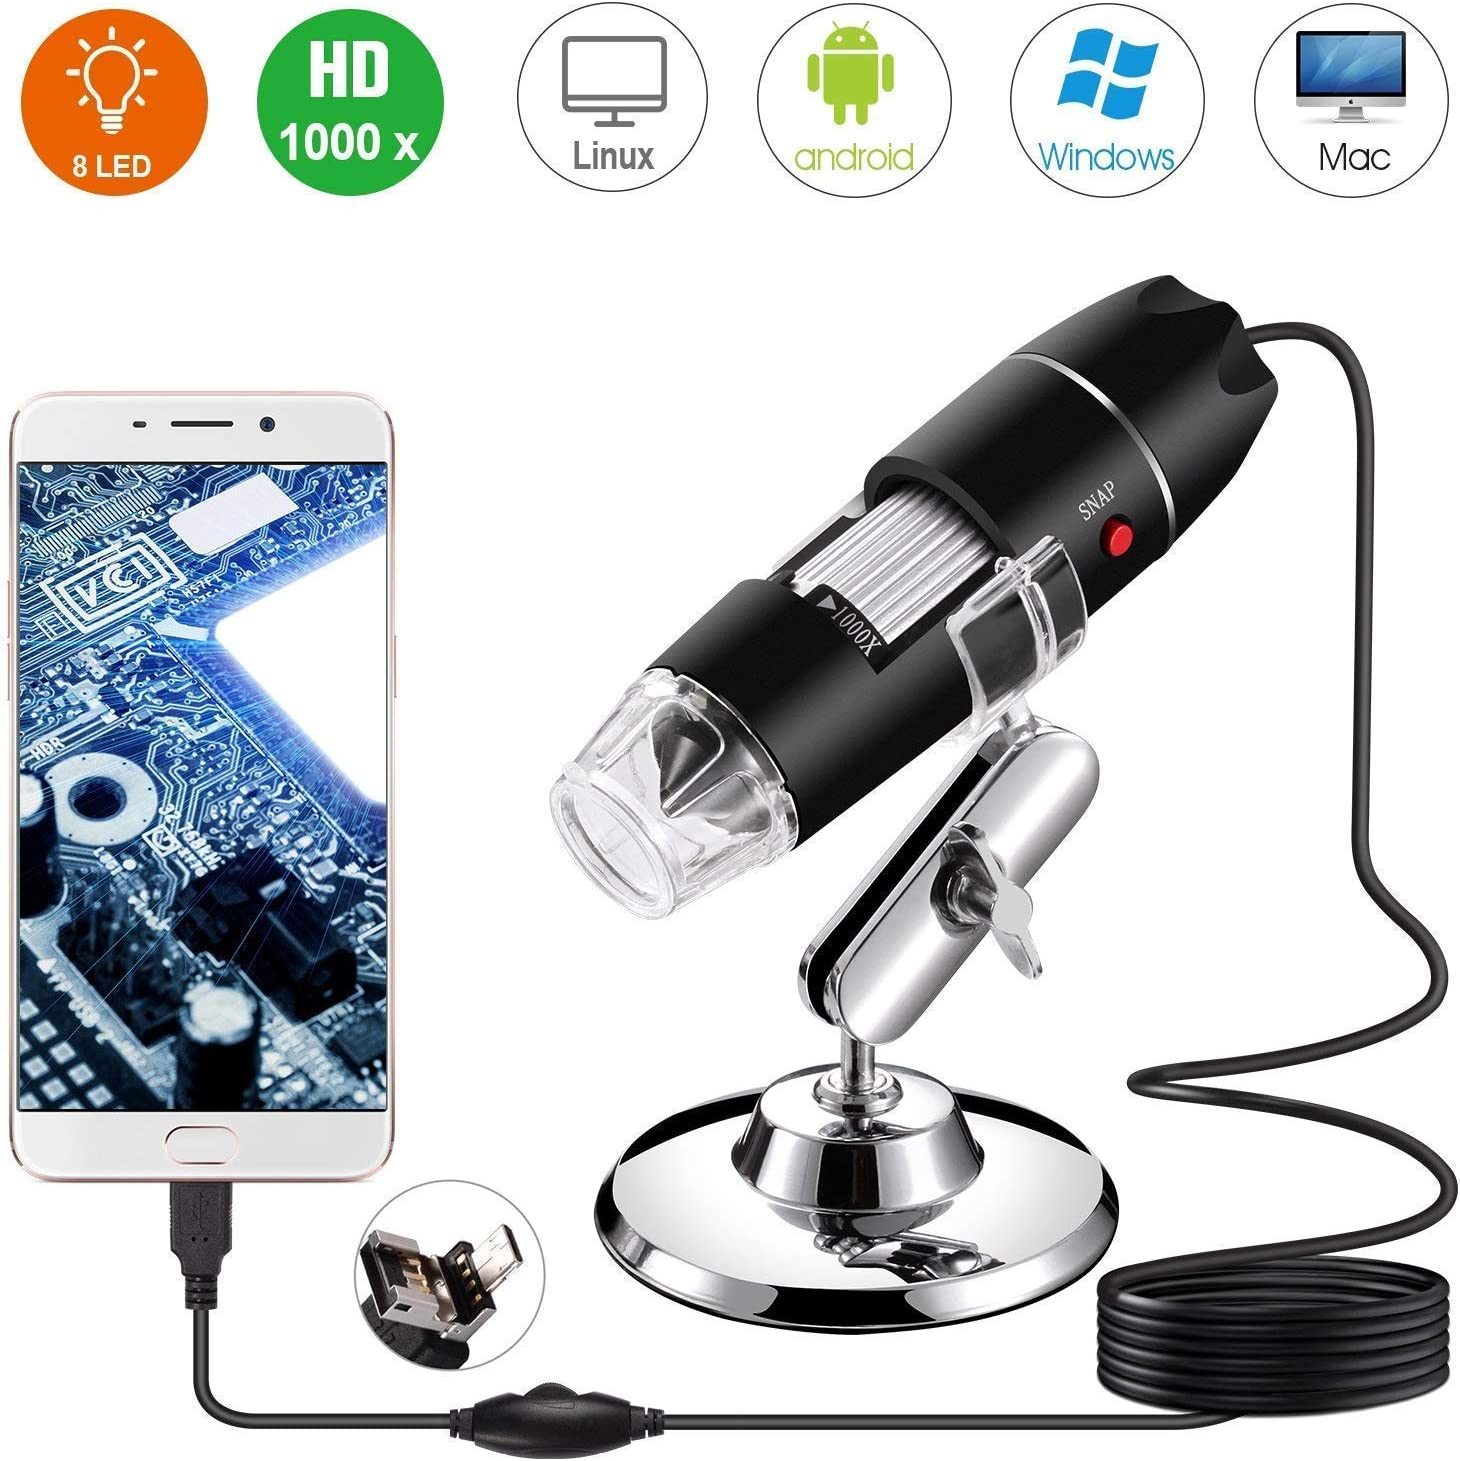 50X to 1000X Magnification Mini Endoscope Camera with 8 LEDs and Microscope Stand,Compatible with Android Adults Mac,Window 7 8 10 for Kids Digital USB Microscope Students